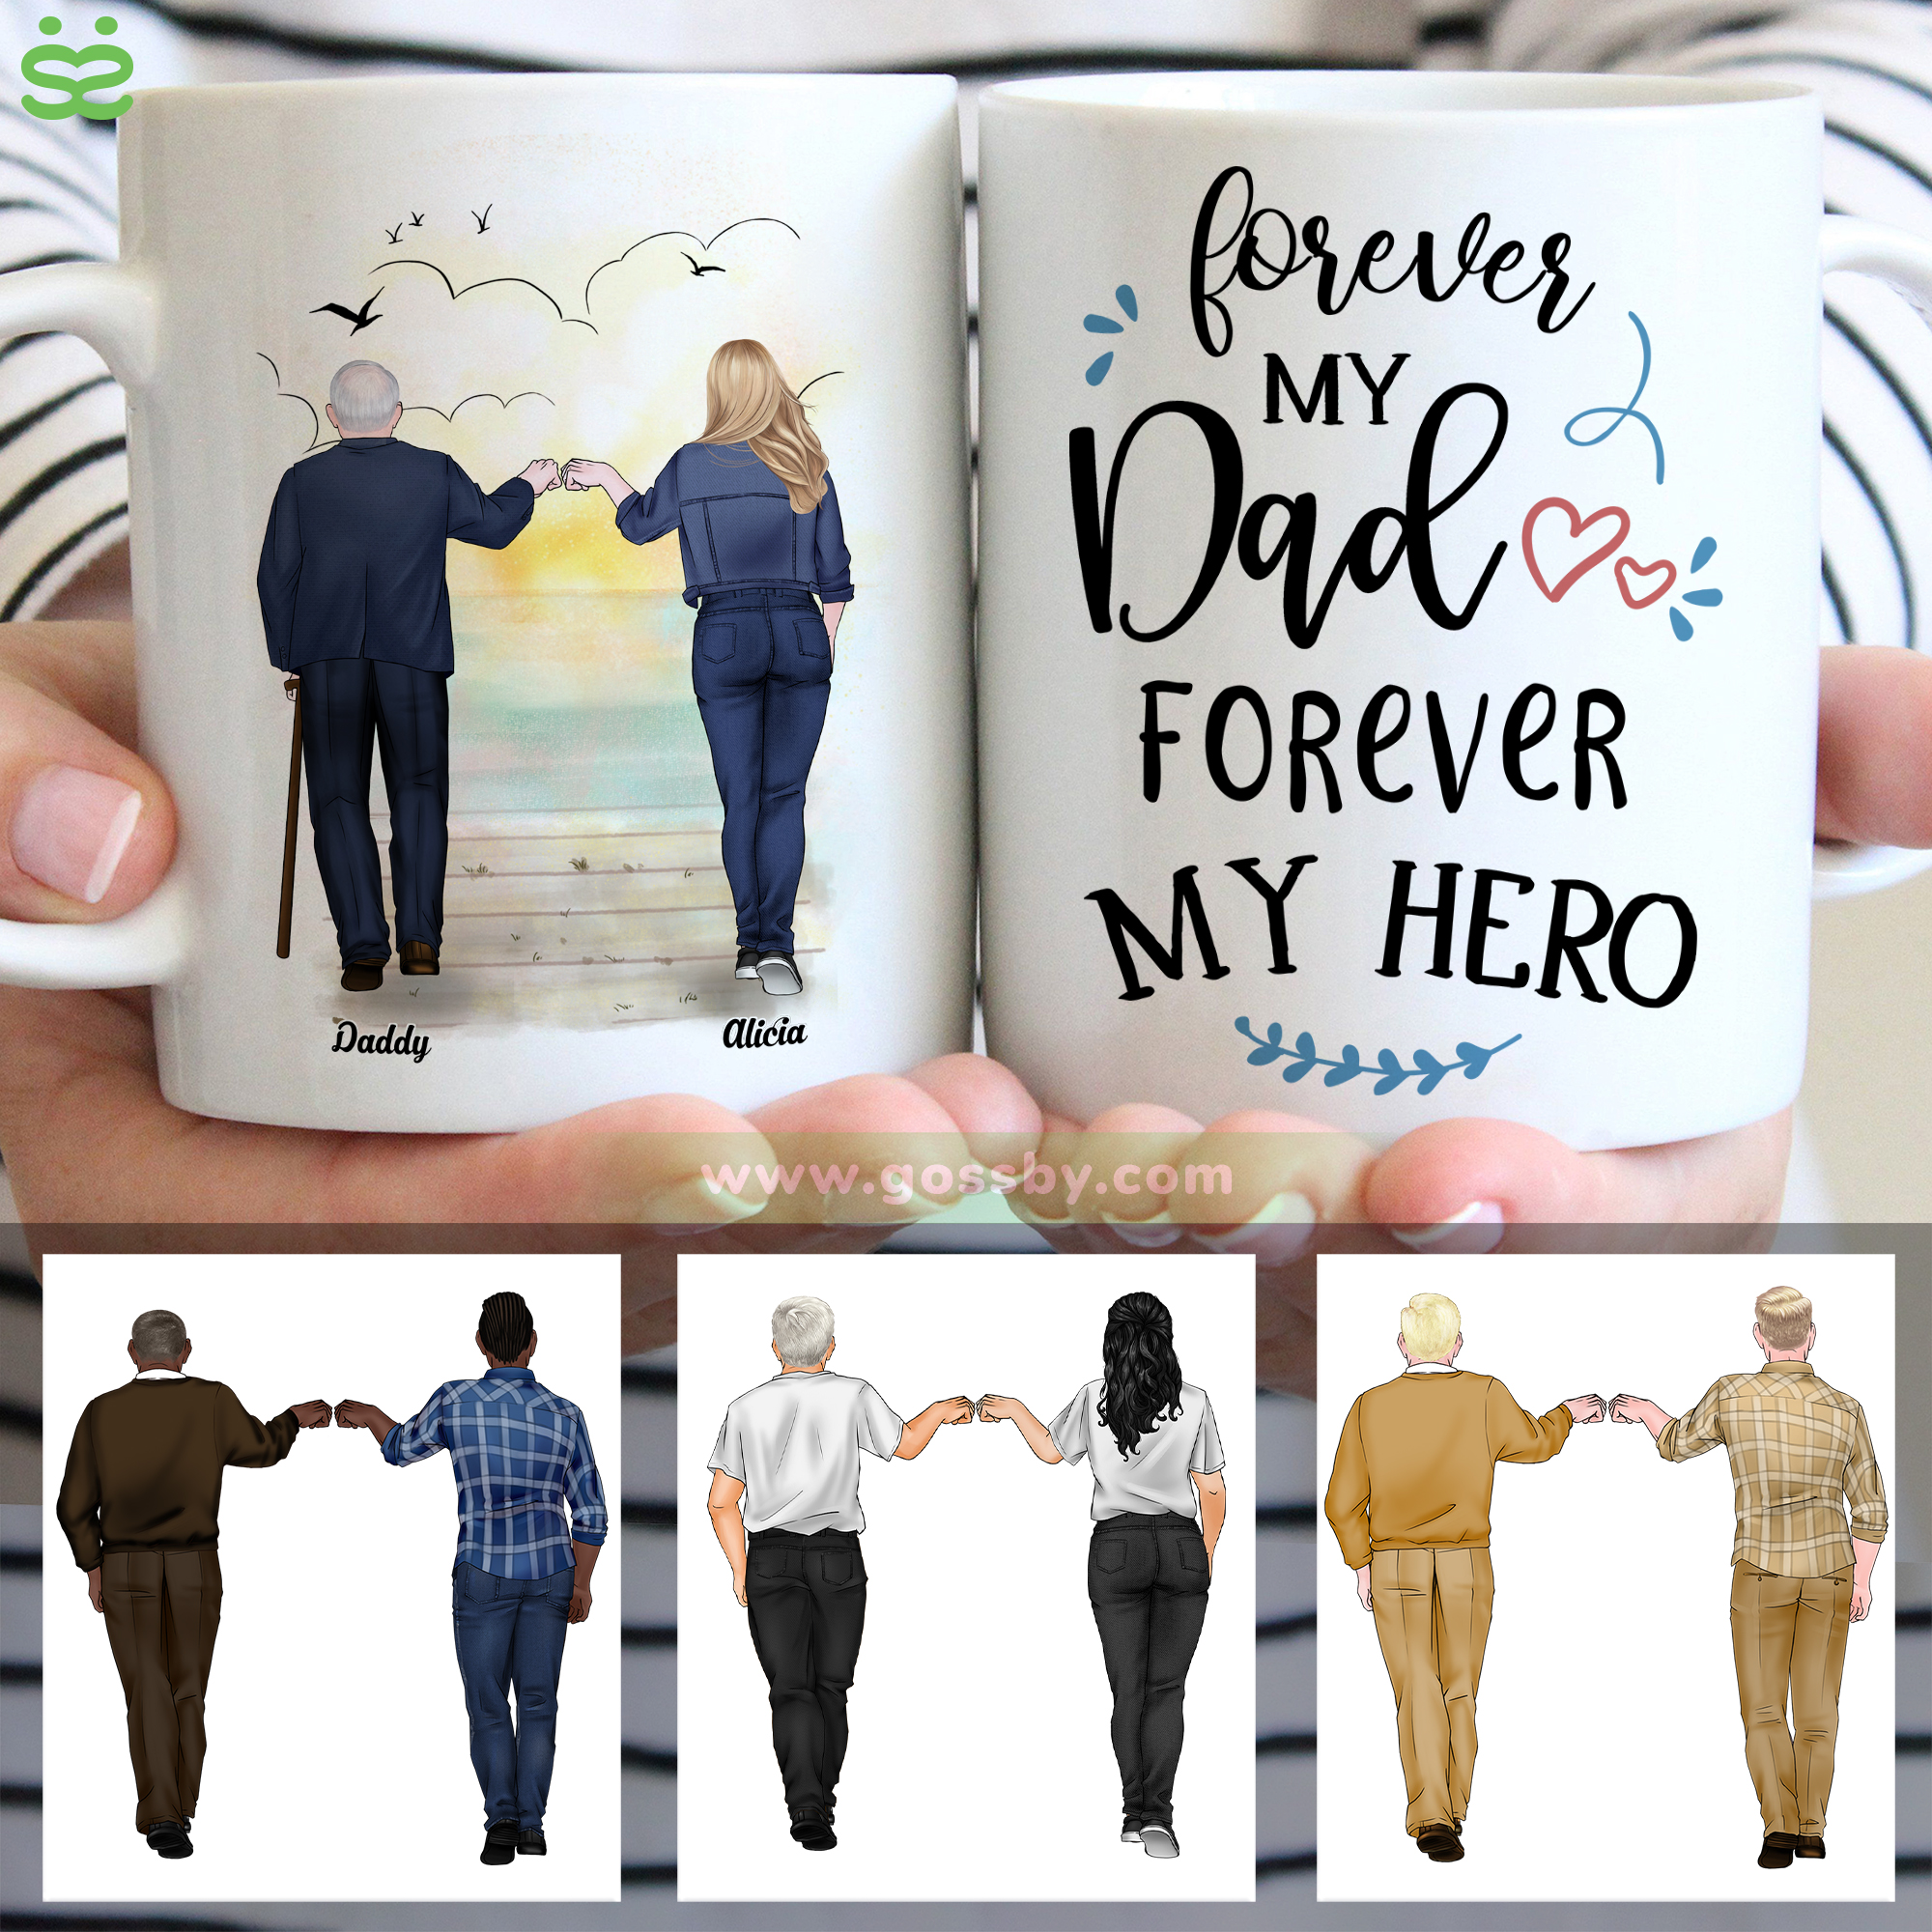 Personalized Mug - Father's Day - (W) Forever My Dad, Forever My Hero (DH) - V.2